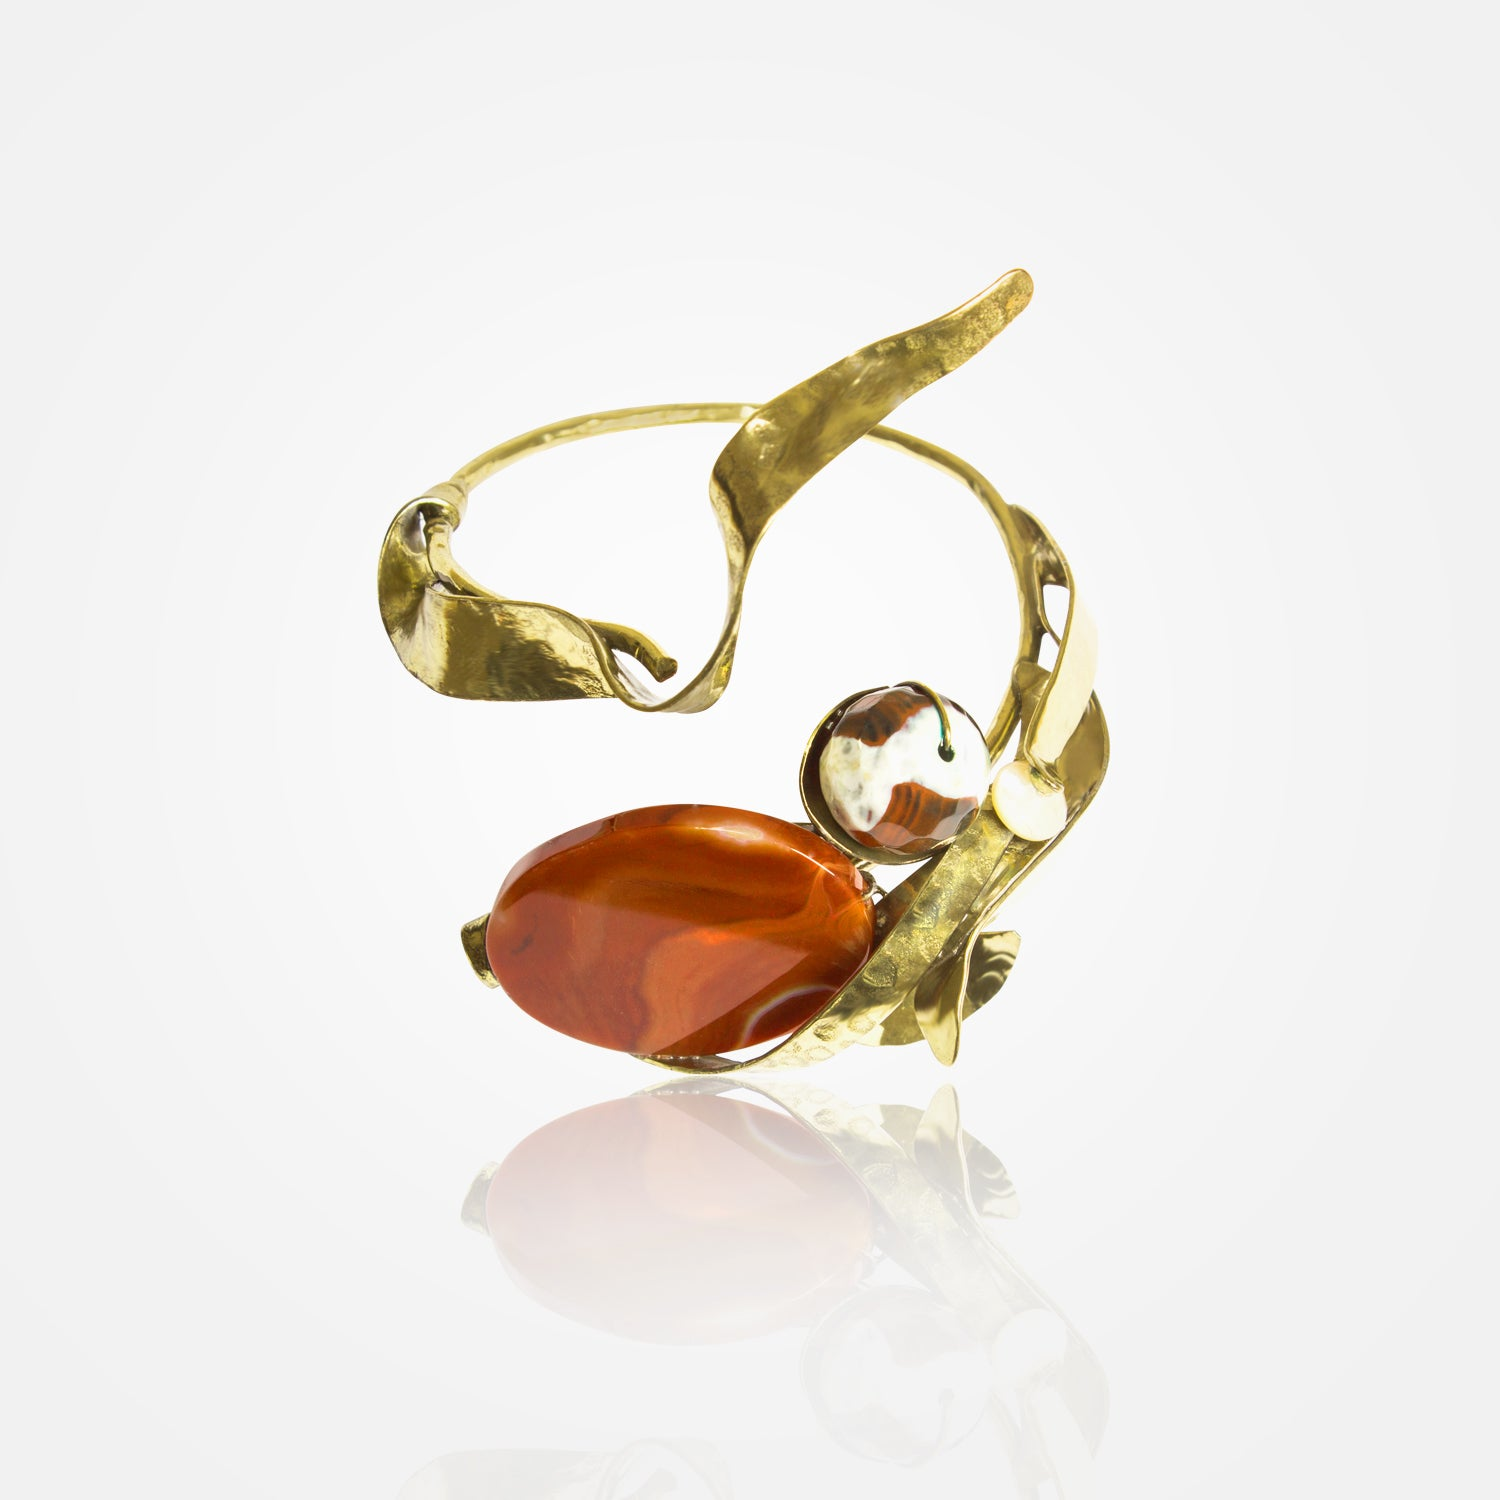 Handcrafted Golden Embers Bracelet by FO.BE